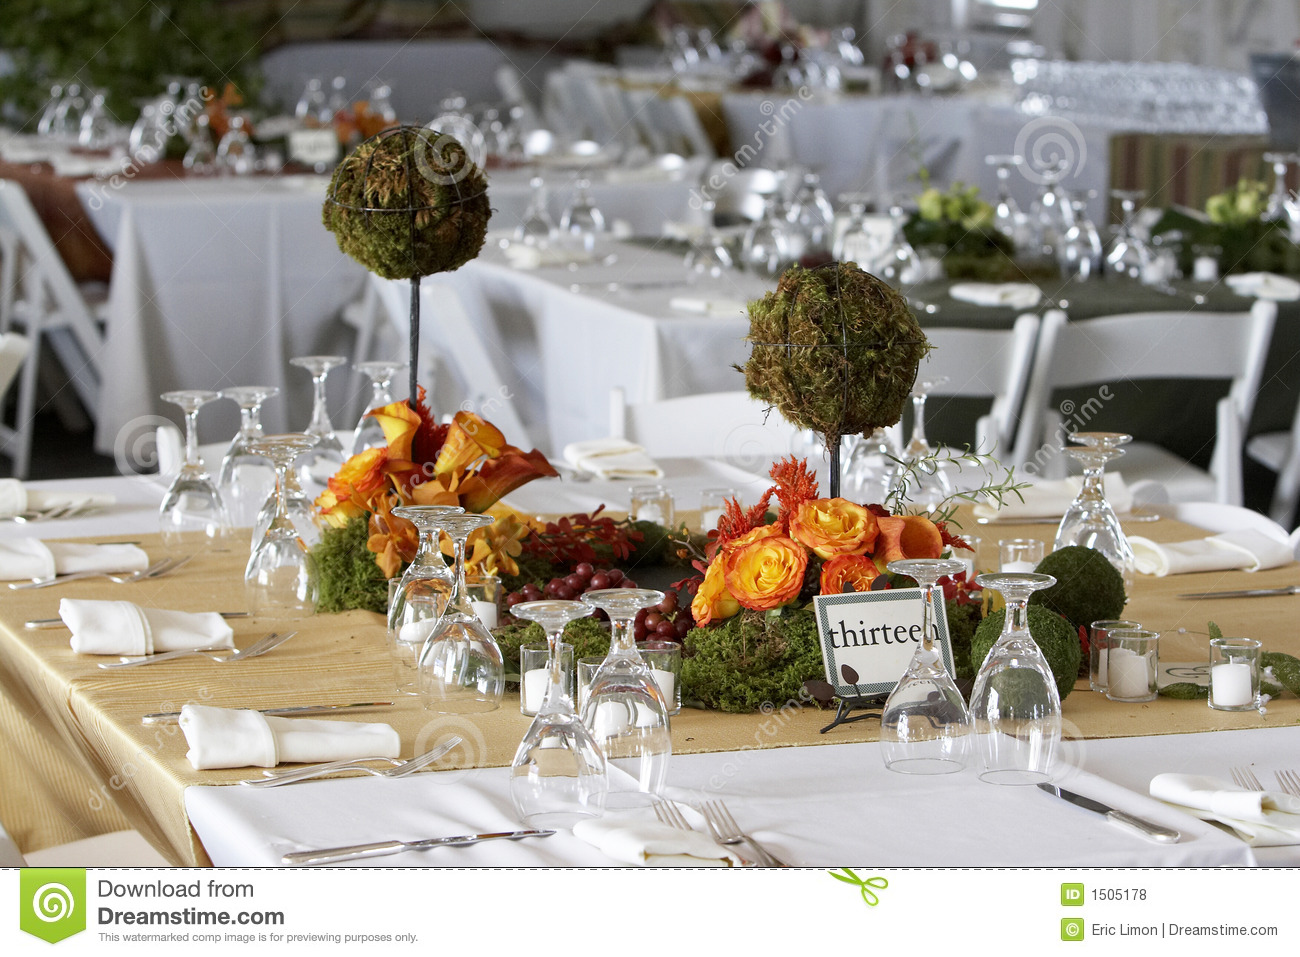 Dining Table Set For A Wedding Or Corporate Event Stock Photo - Image of detail banquets 1505178 & Dining Table Set For A Wedding Or Corporate Event Stock Photo ...